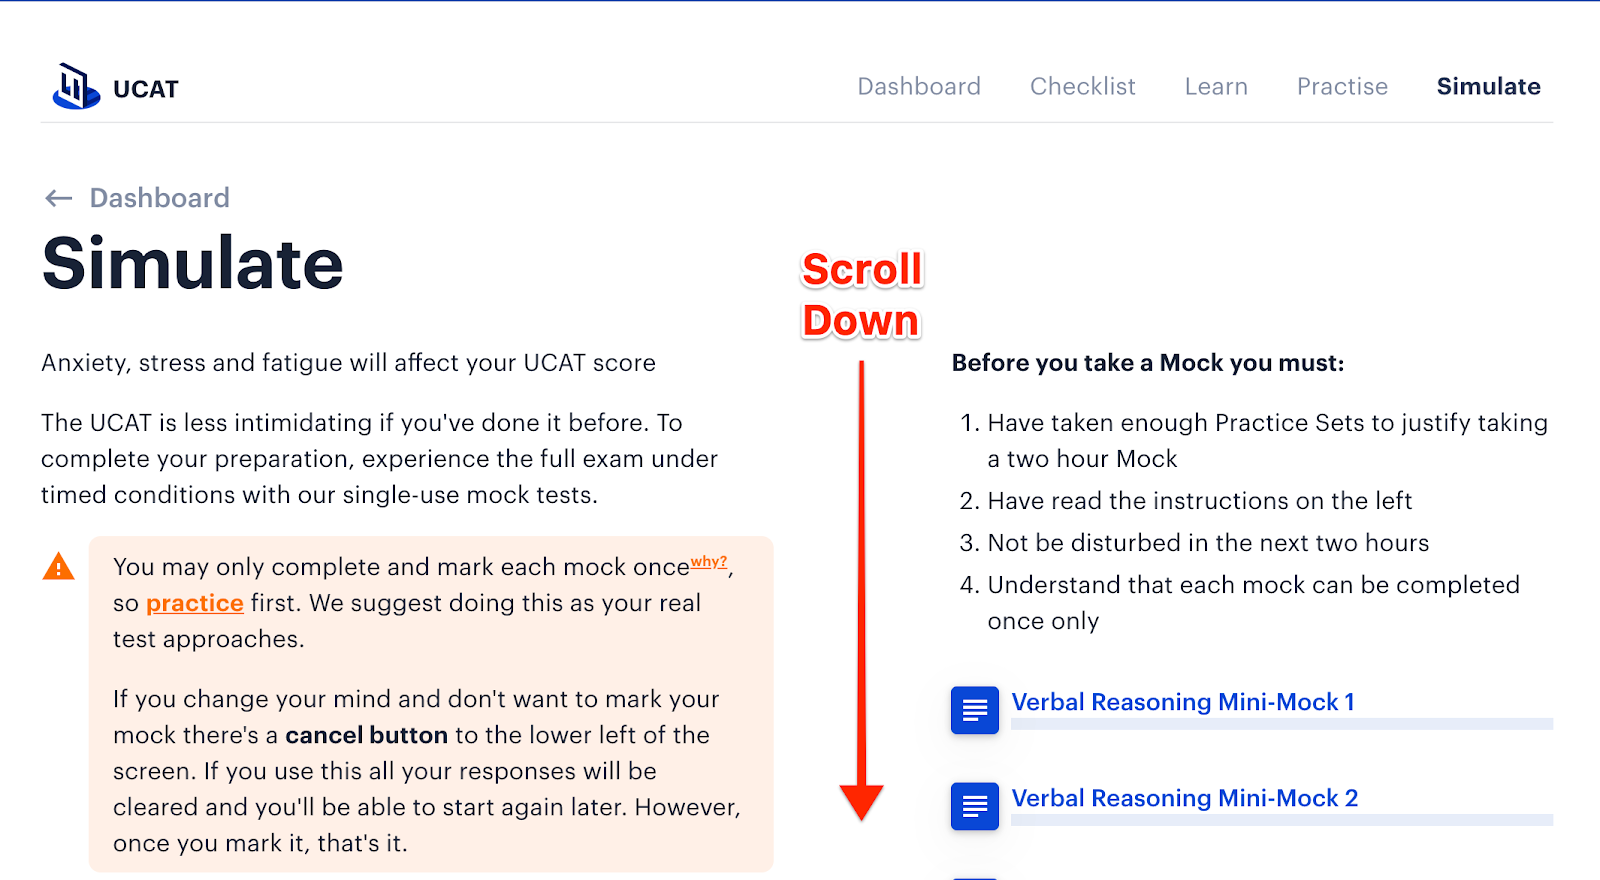 Where to find Medify's online UCAT diagnostic test